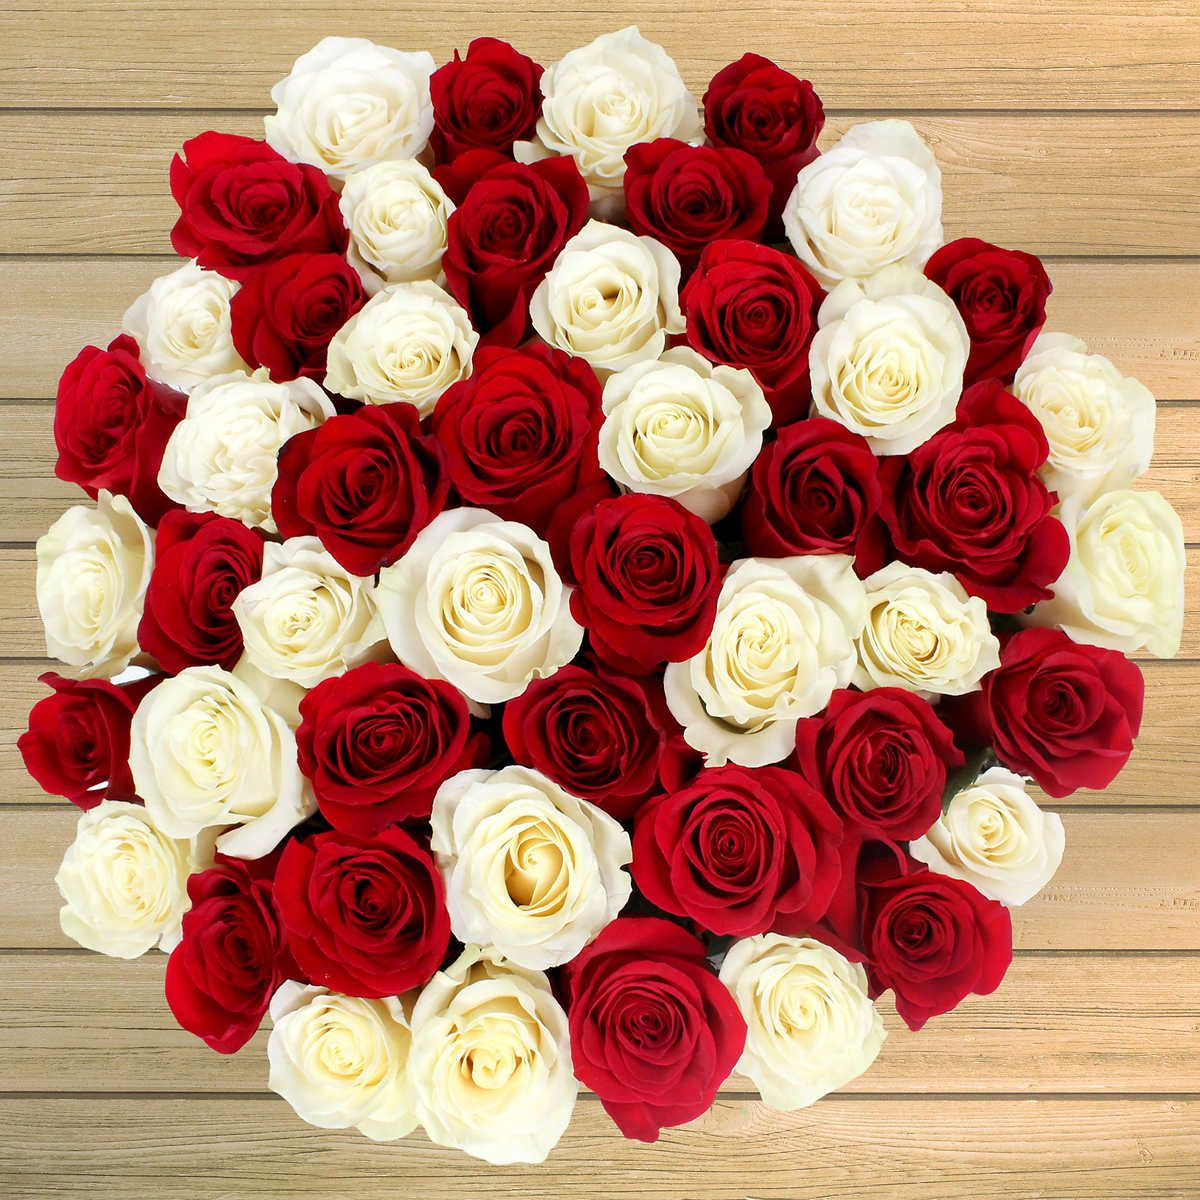 Red & White Roses, 50 an order at Costco 50. Shipping